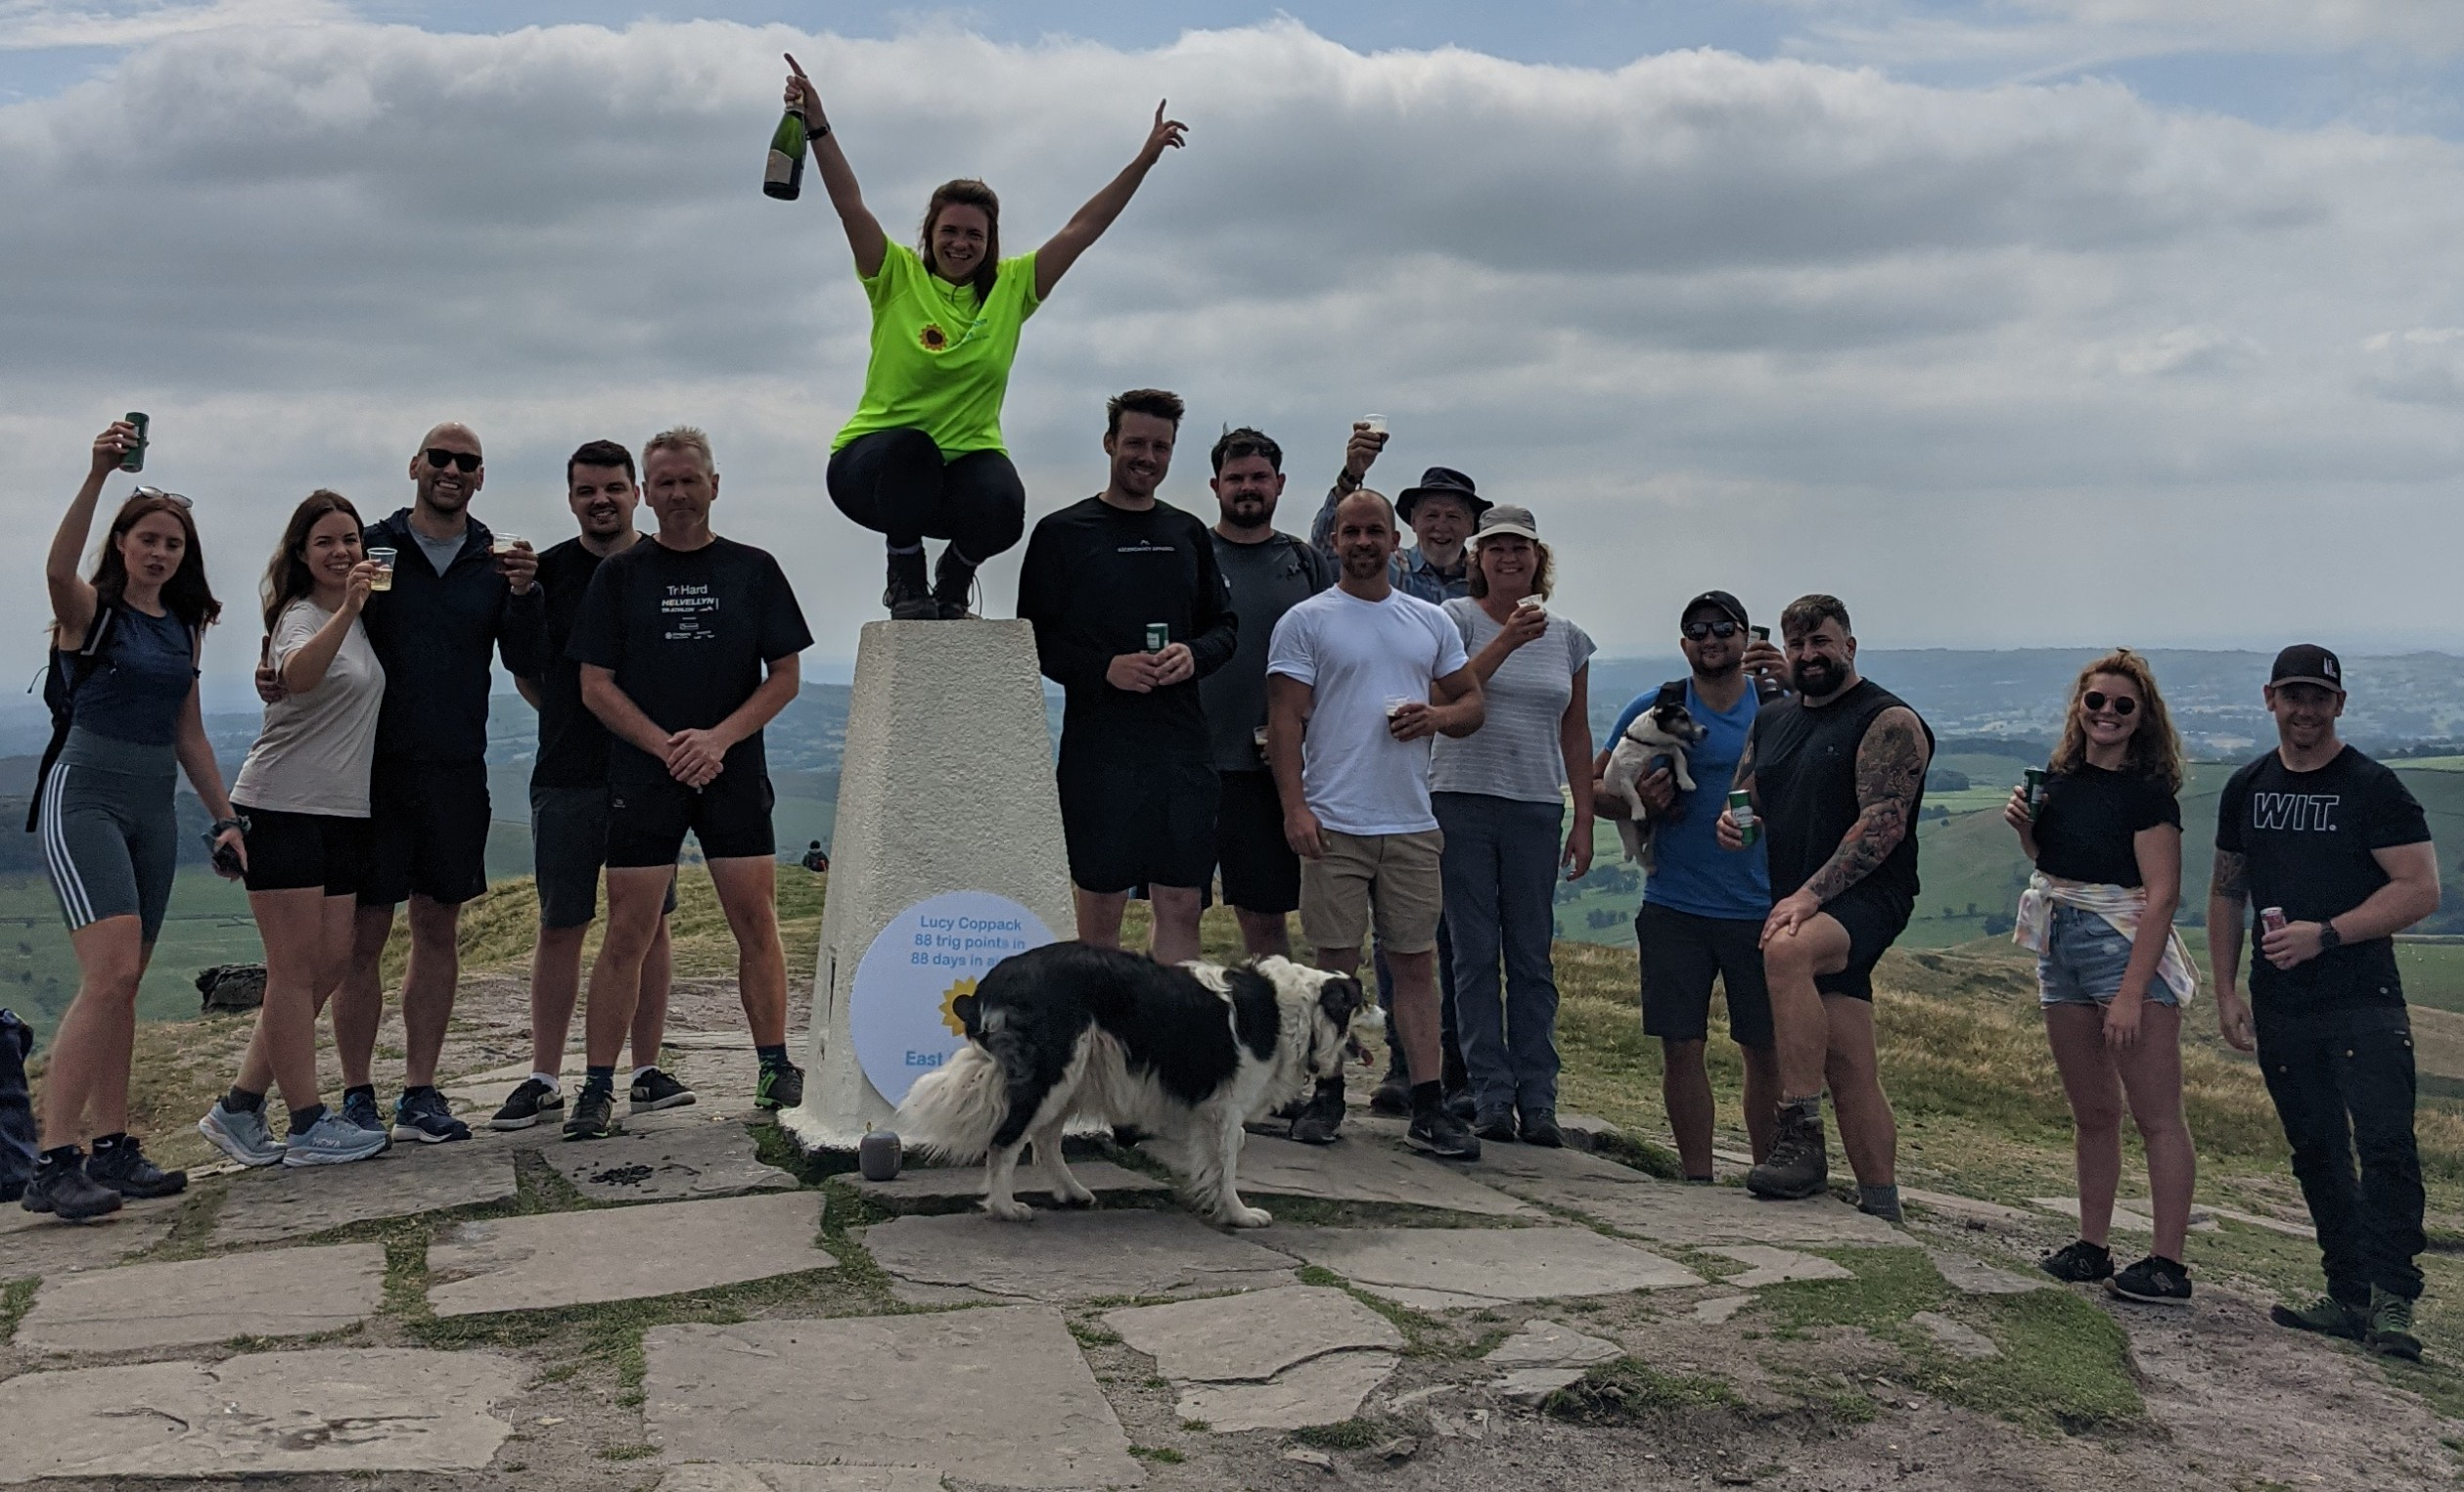 Hiking 88 hills in the Peak District